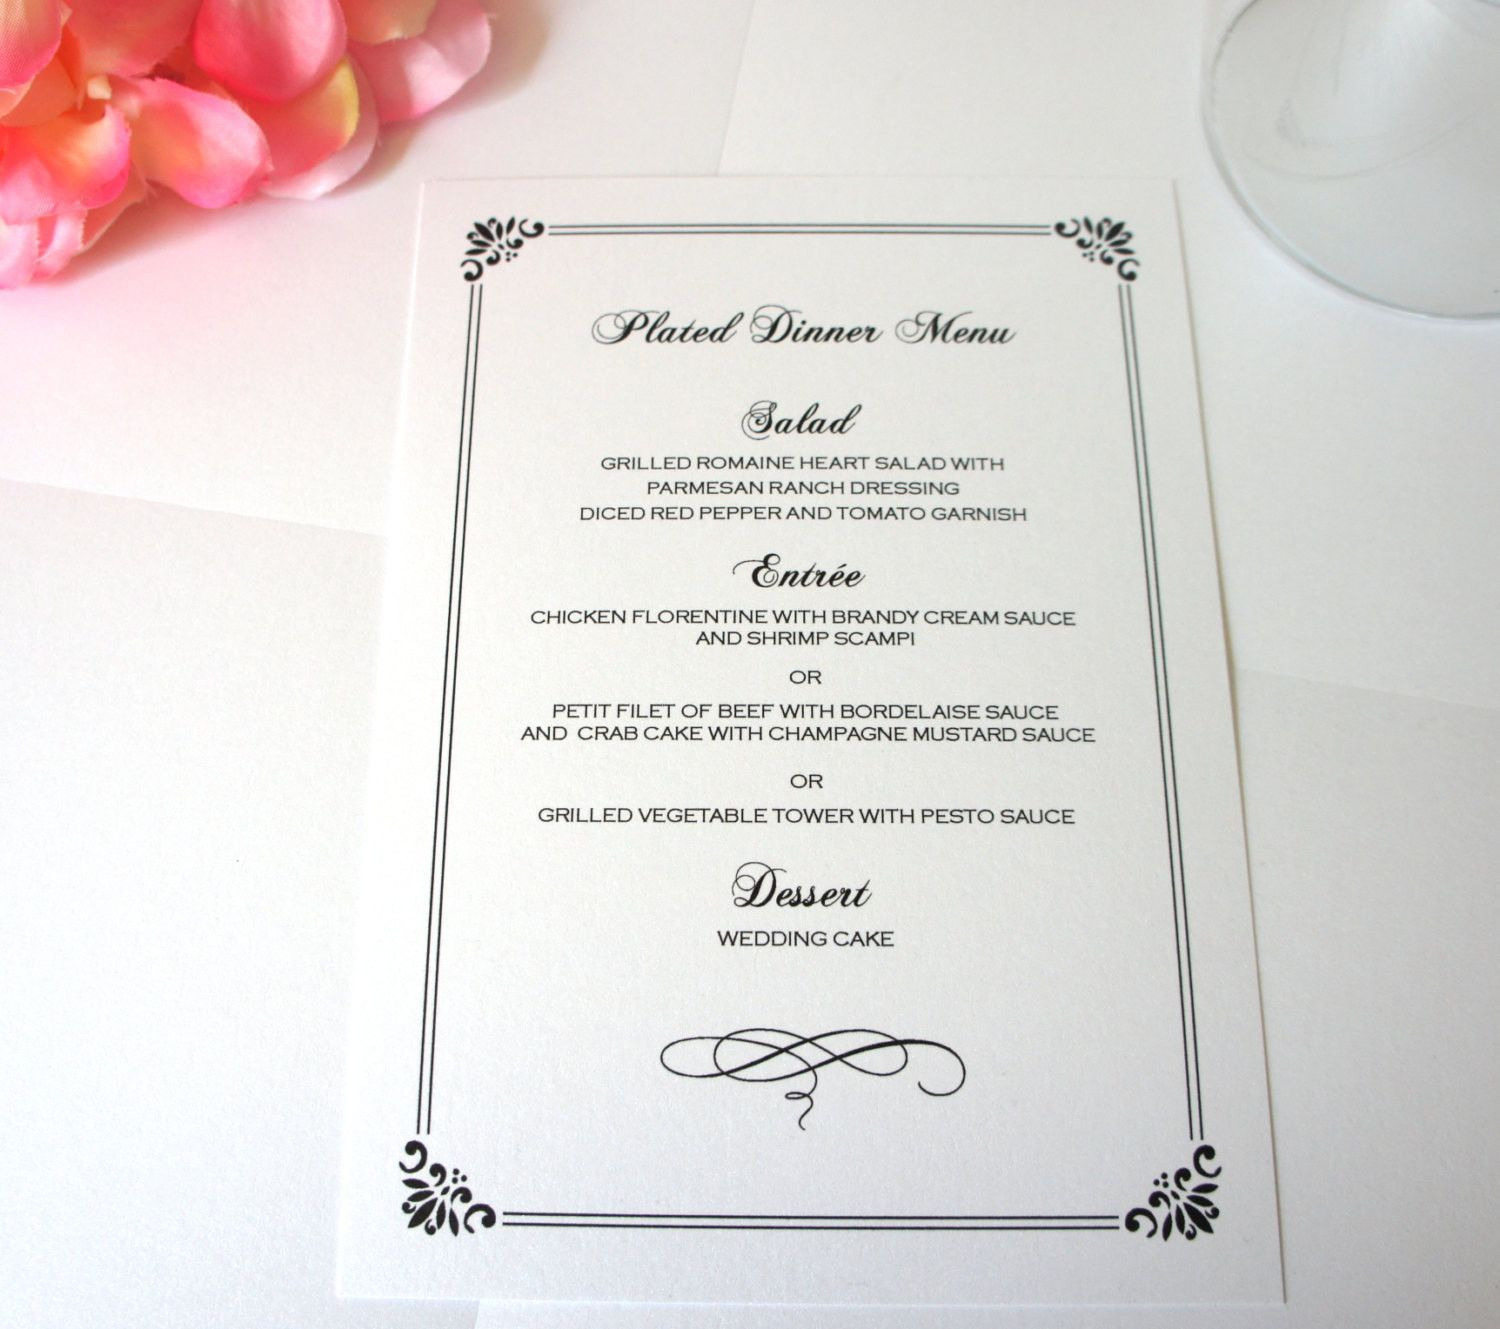 Elegant Menu Card Formal Wedding Menus Black Dinner Deposit